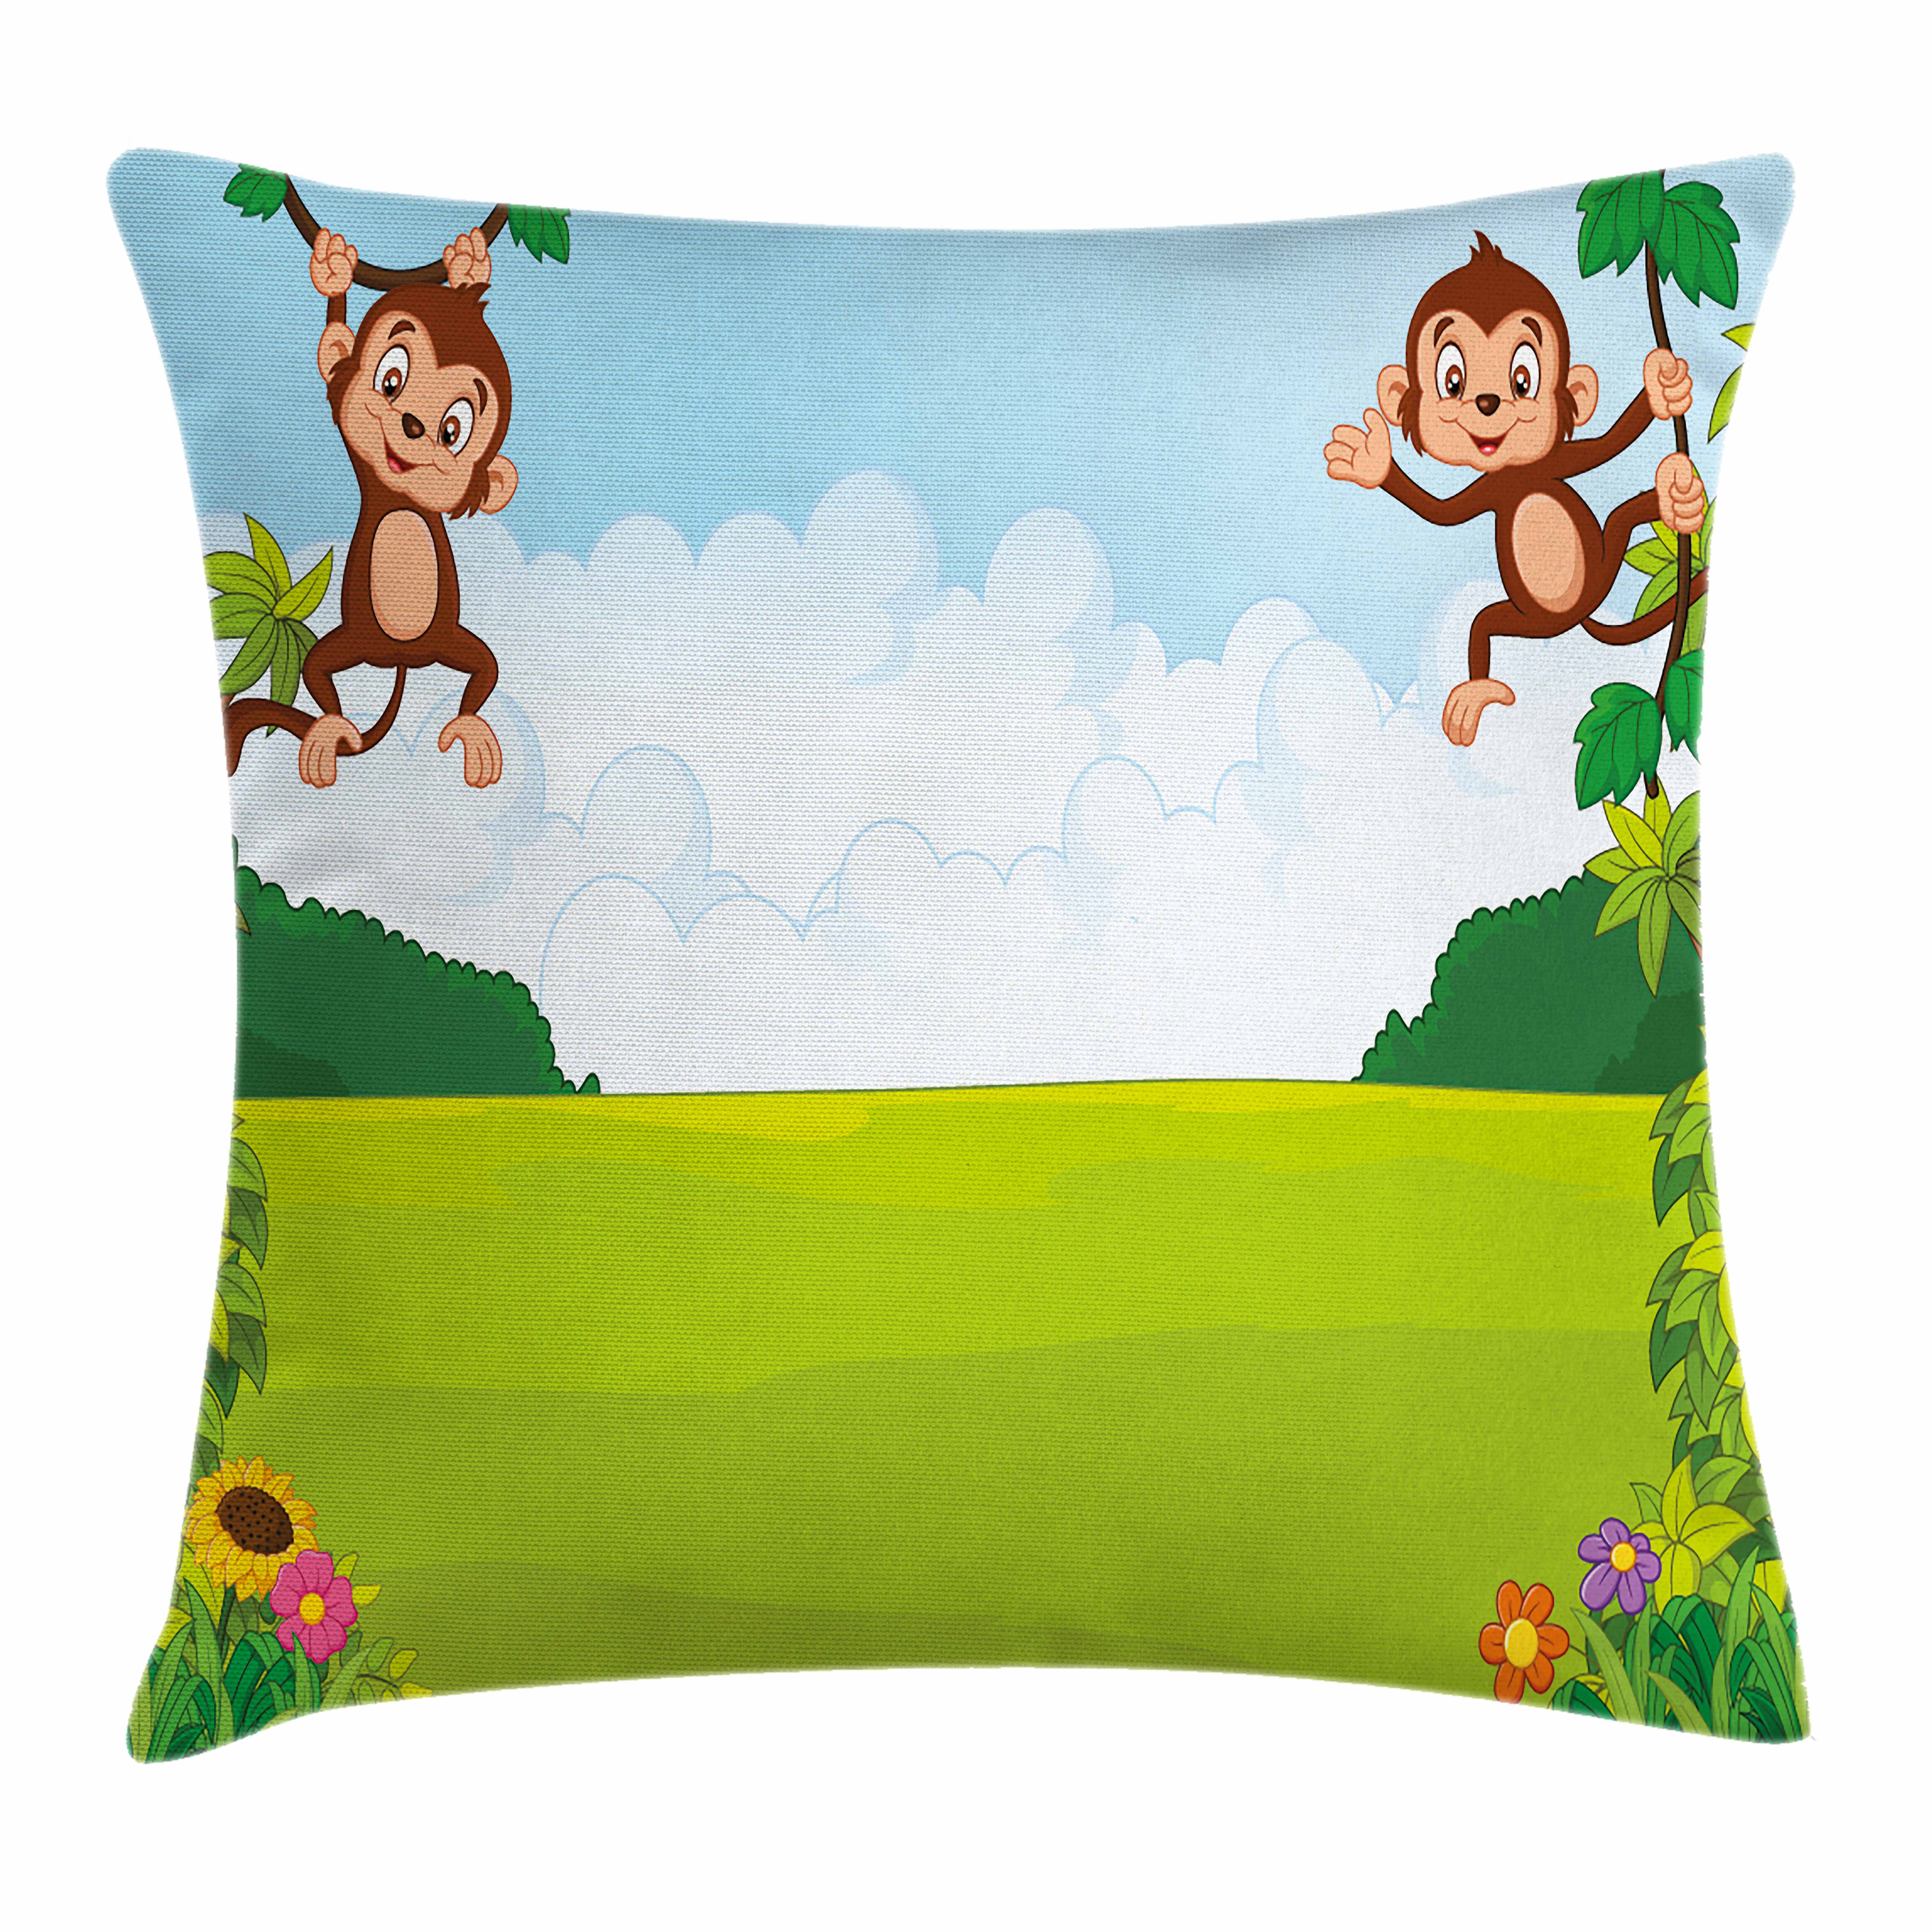 Nursery Throw Pillow Cushion Cover, Cute Playful Monkeys Hanging on Vines Young Kid Chimpanzees Summer Fun, Decorative Square Accent Pillow Case, 16 X 16 Inches, Pale Blue Brown Green, by Ambesonne